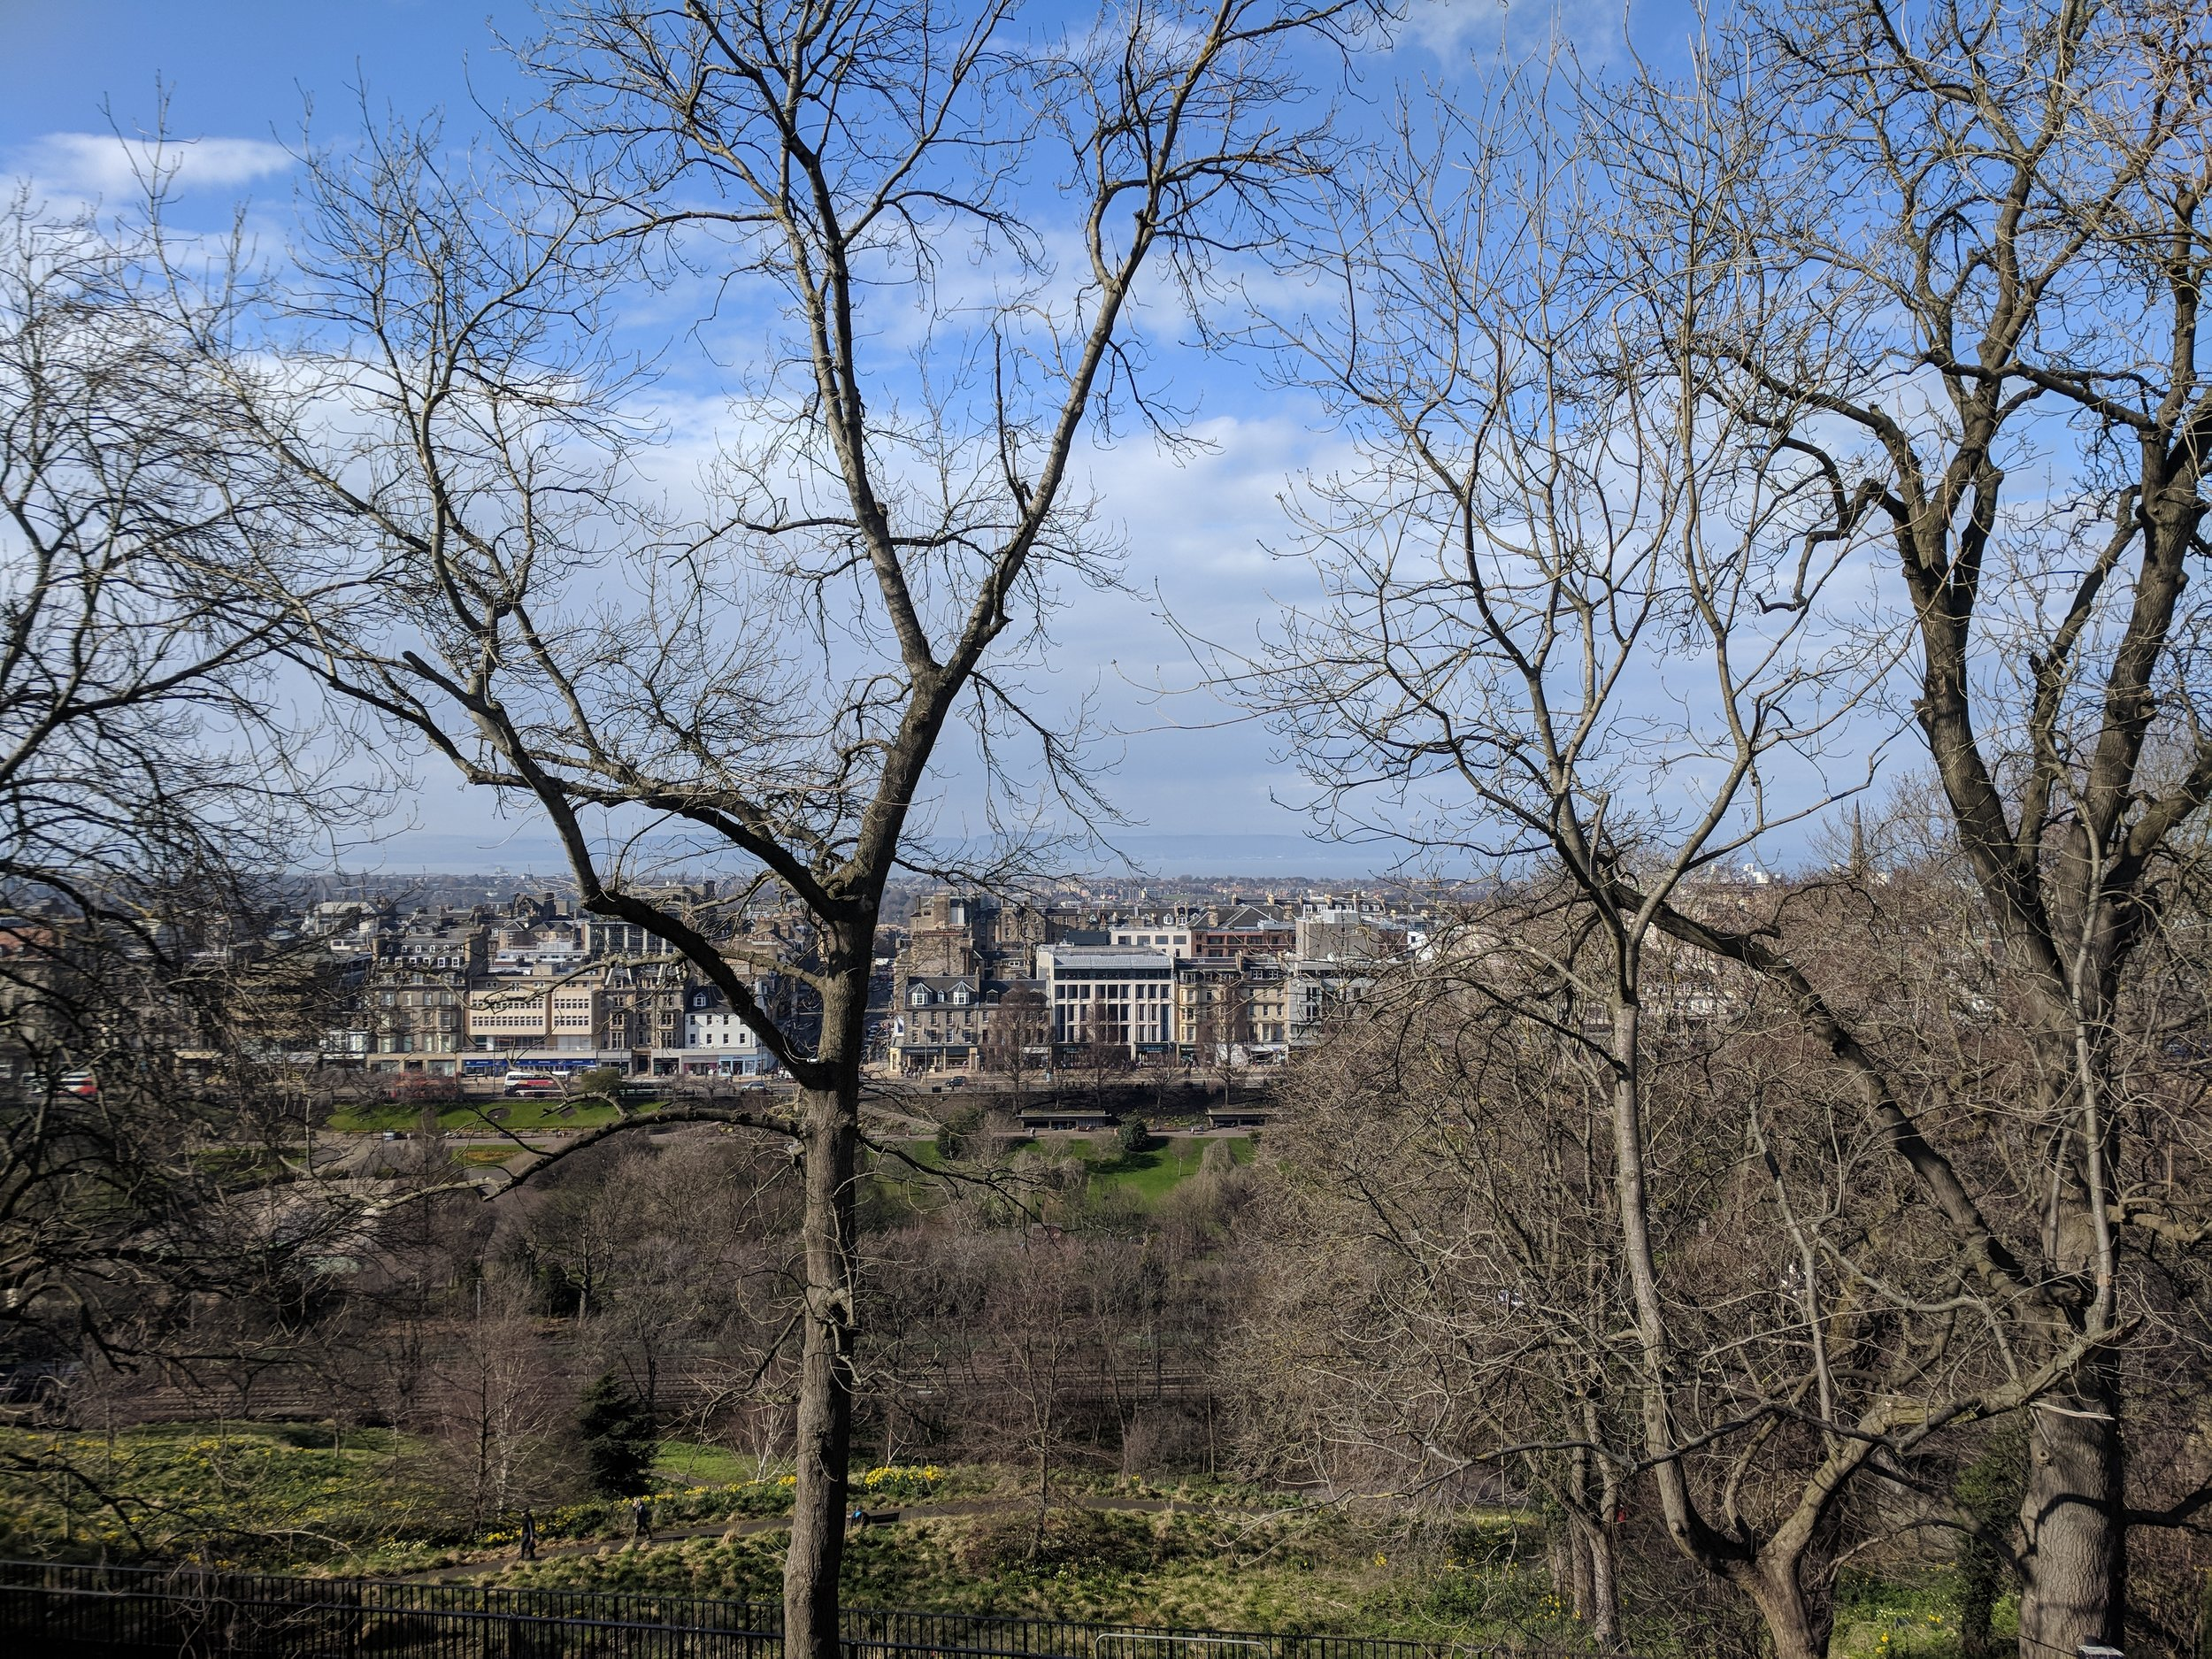 The view over Princes Street Park and New Town